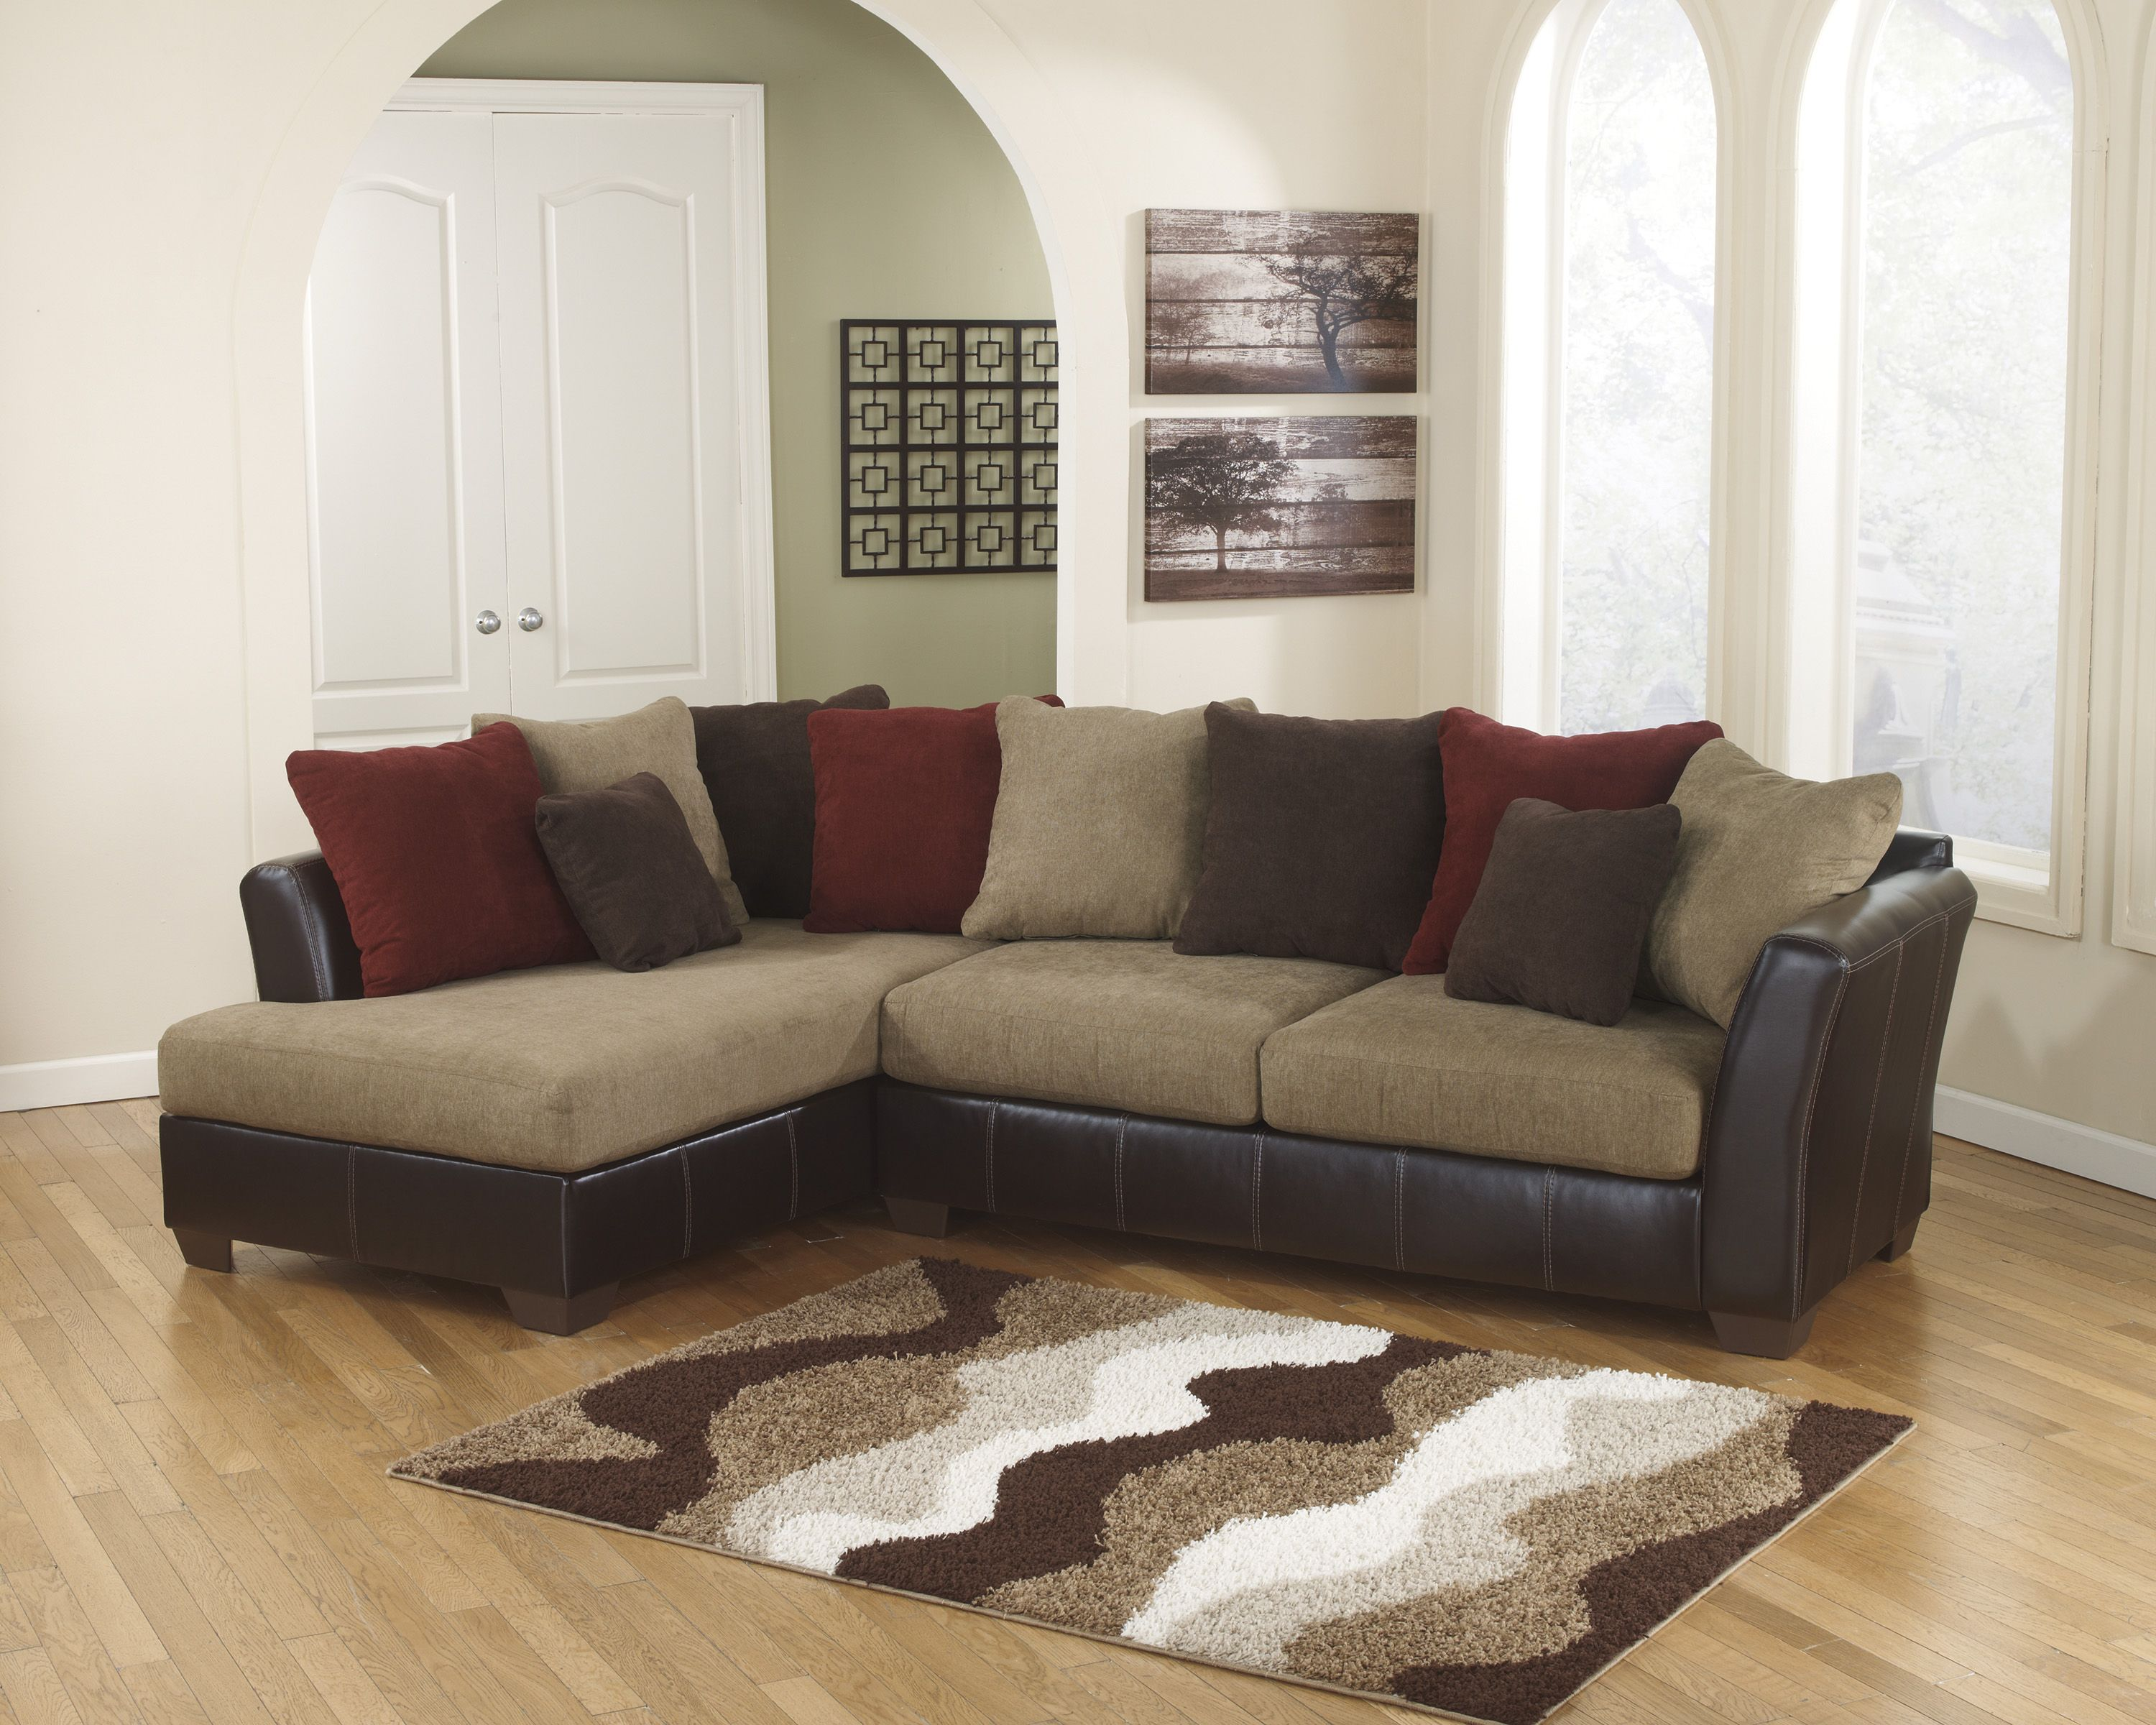 The Chaise Lounge On The Sanya Sectional Can Be Ordered On Either Side Of The Set With Images Ashley Furniture Sectional Ashley Furniture